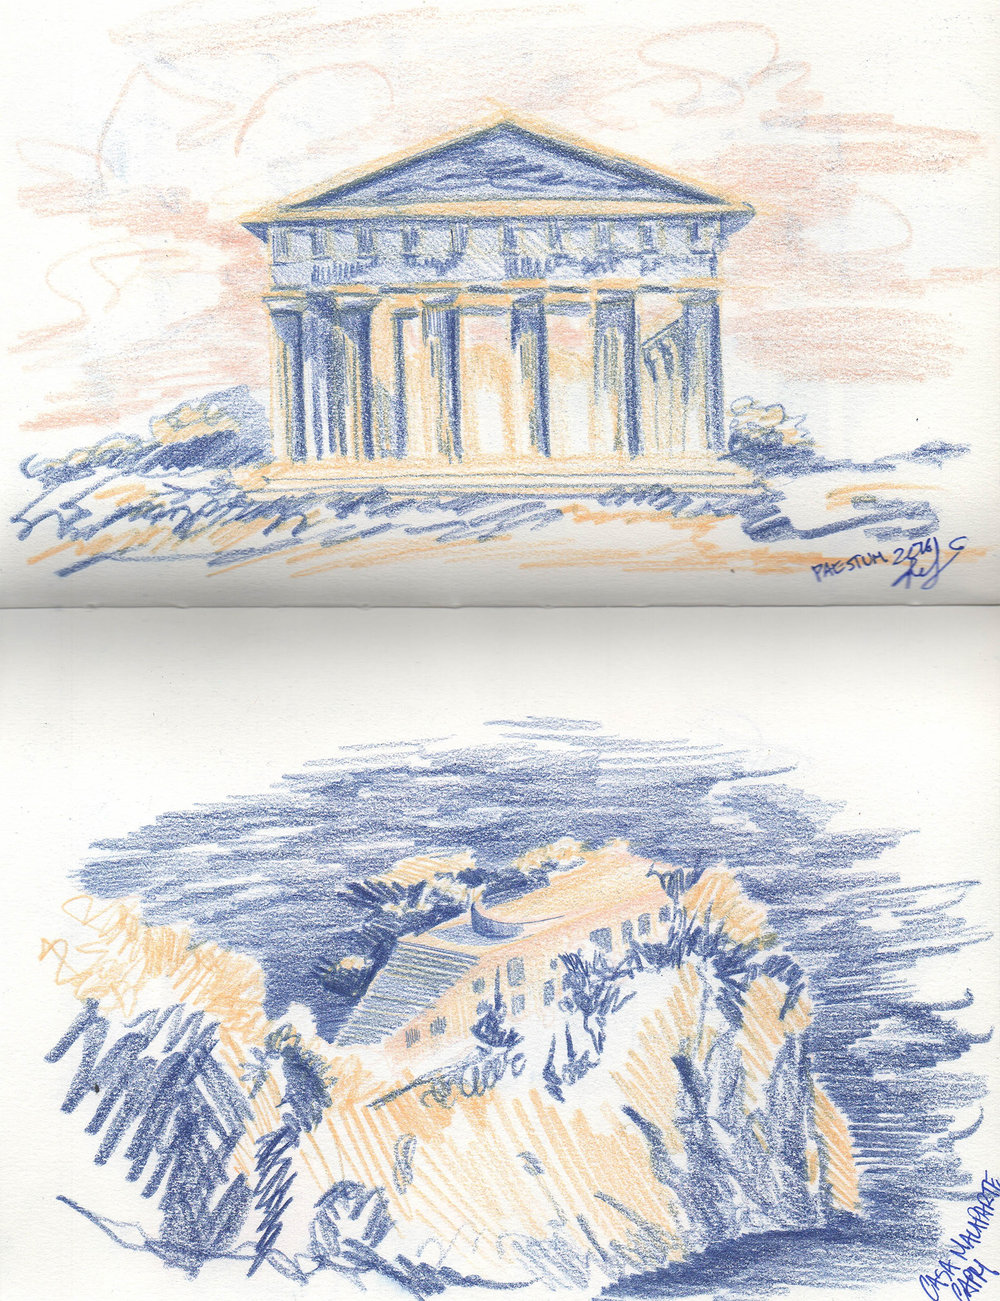 Rome-Sketchbook-Edited-Scans-62-forweb.jpg